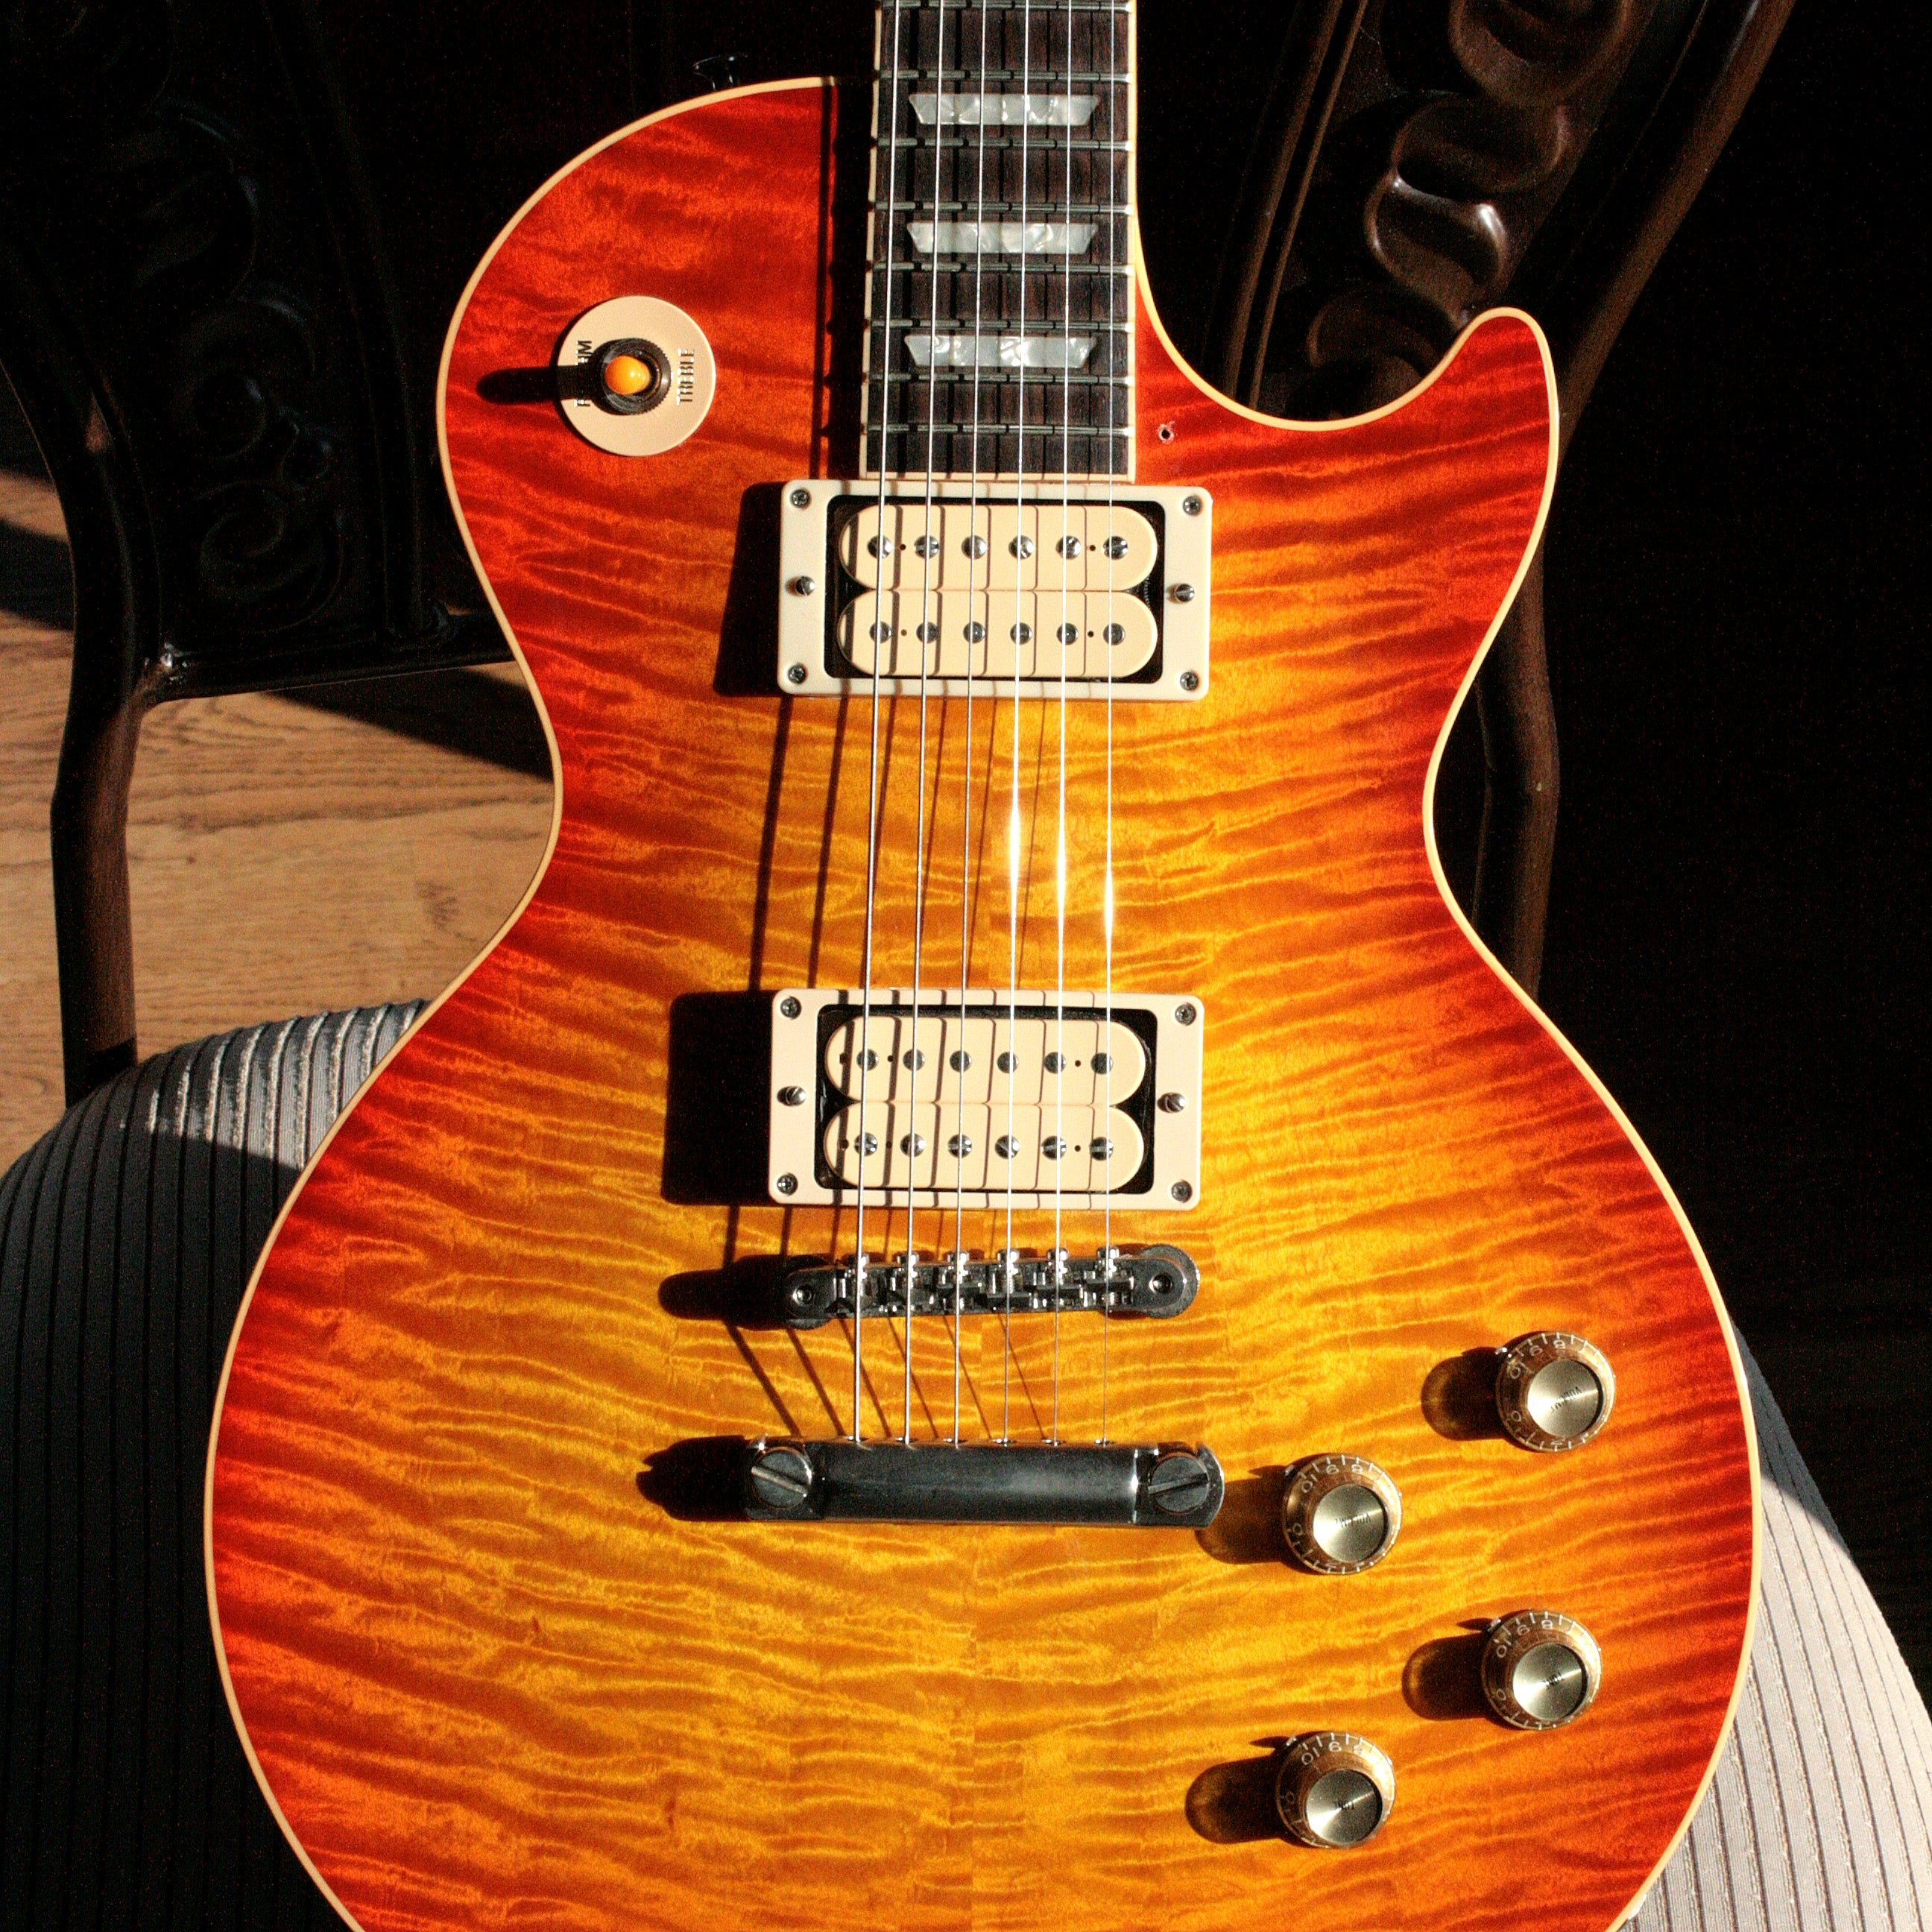 1997 Gibson '60 Les Paul Reissue Historic QUILT Flametop! 1960 R0 LP 1959 R9 Custom Shop